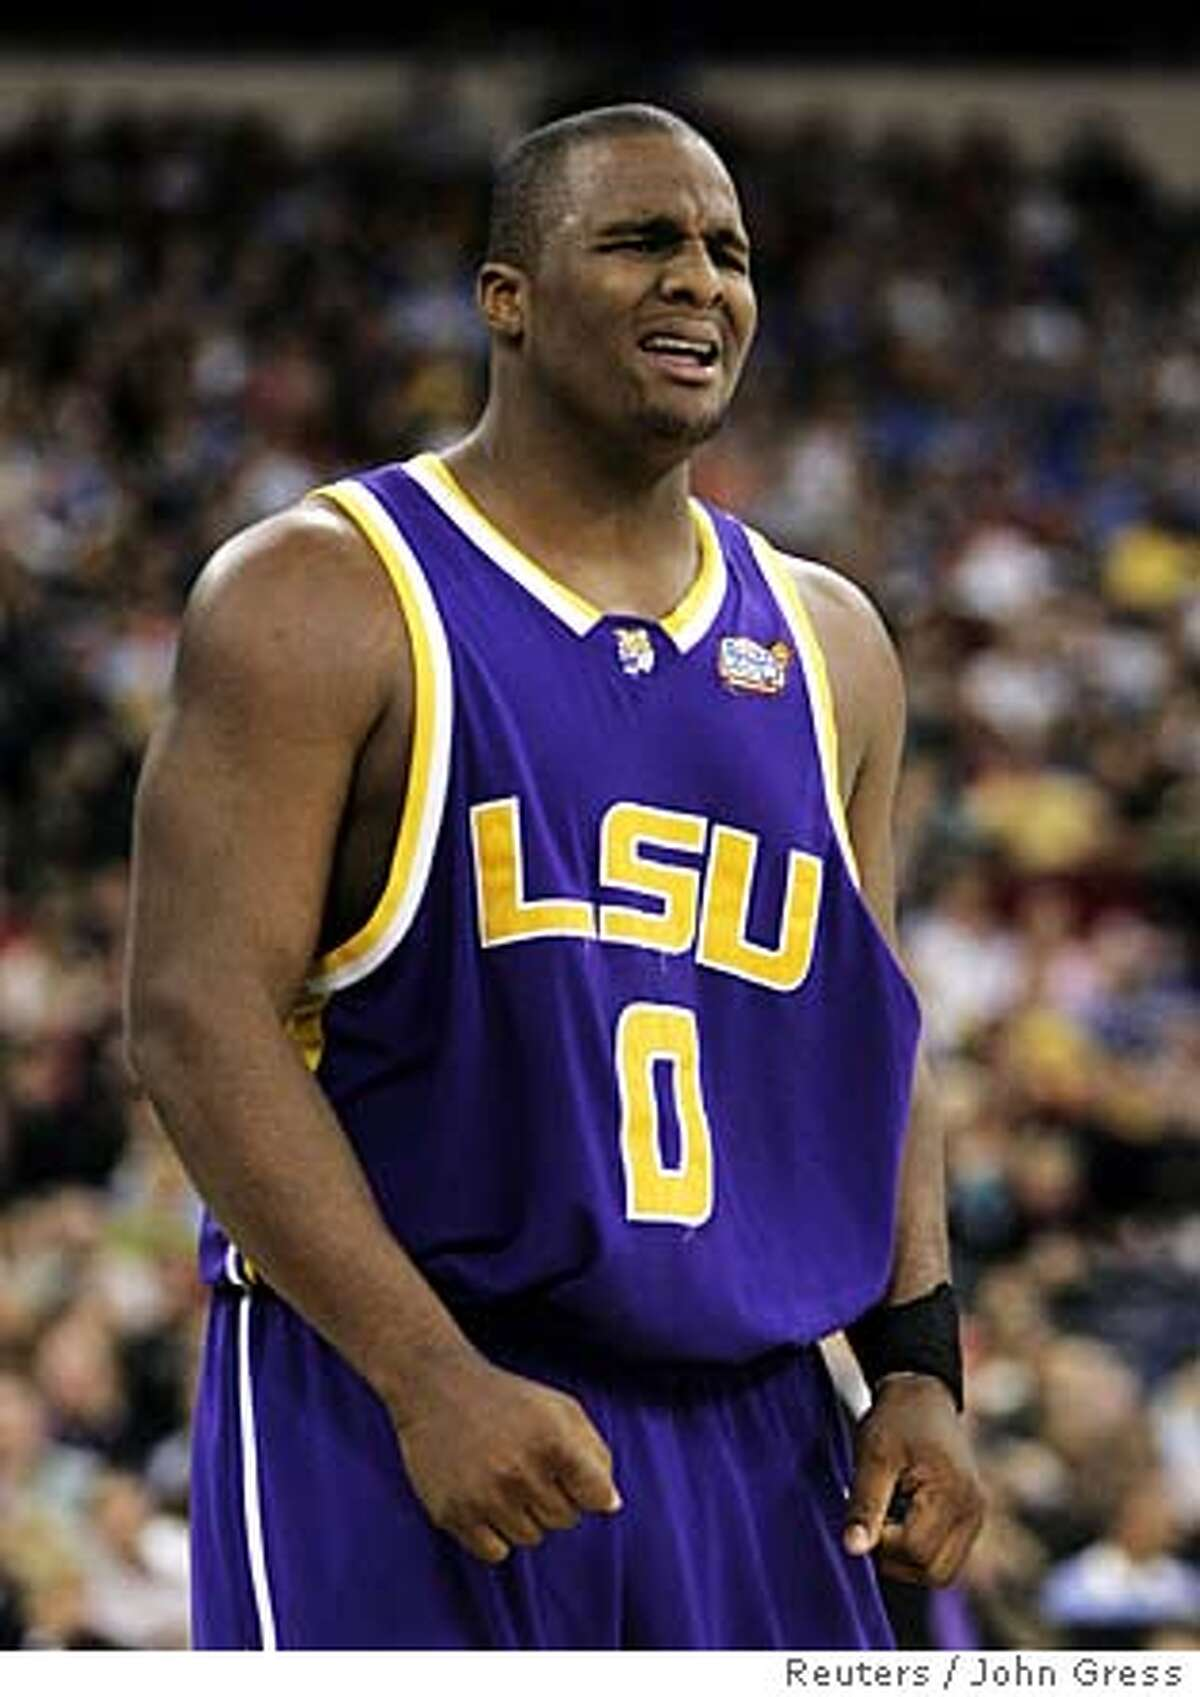 LSU Tigers Davis reacts after hitting shot against UCLA Bruins during game at men's NCAA Final Four in Indianapolis